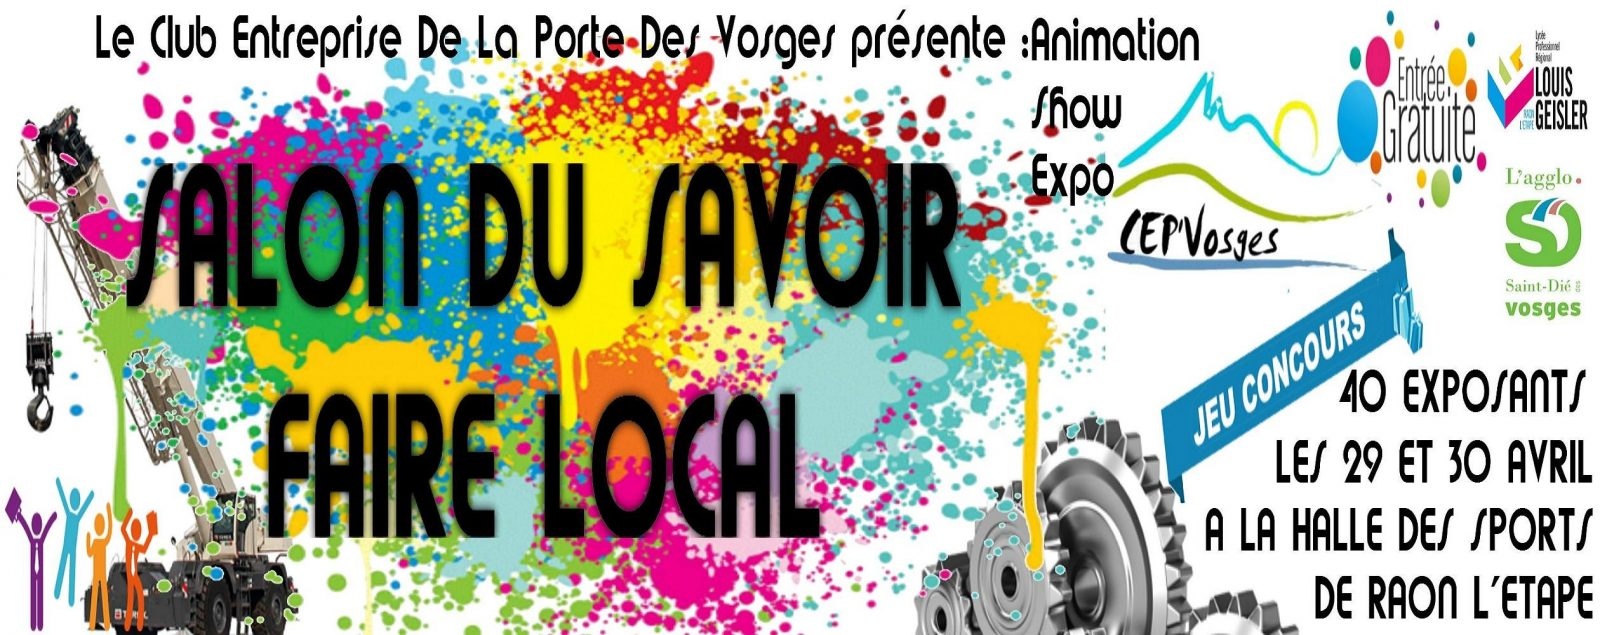 salon savoir faire local Raon L'etape